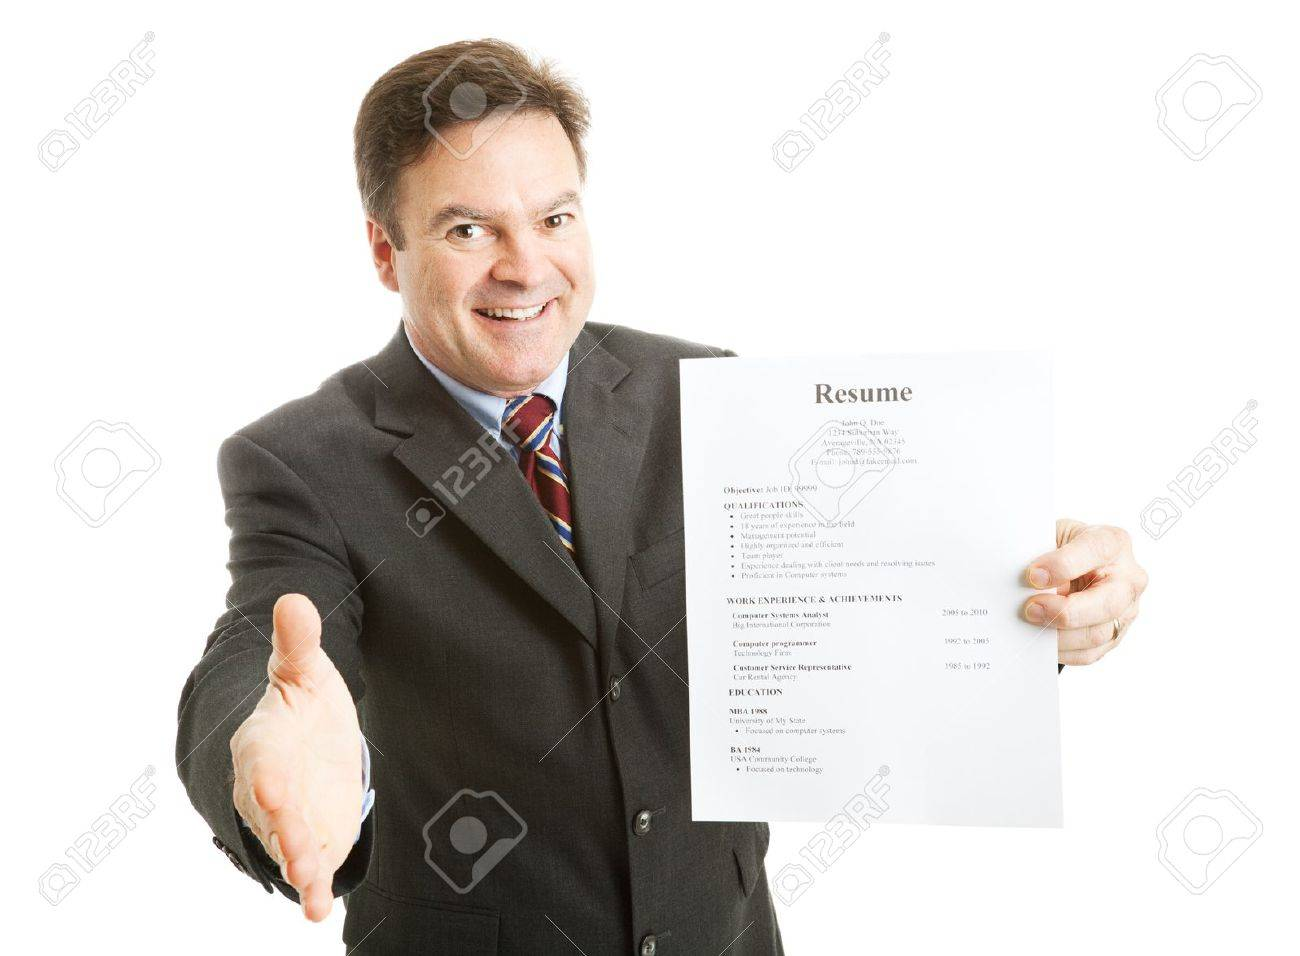 Confident Businessman Ready With His Resume A Smile And A